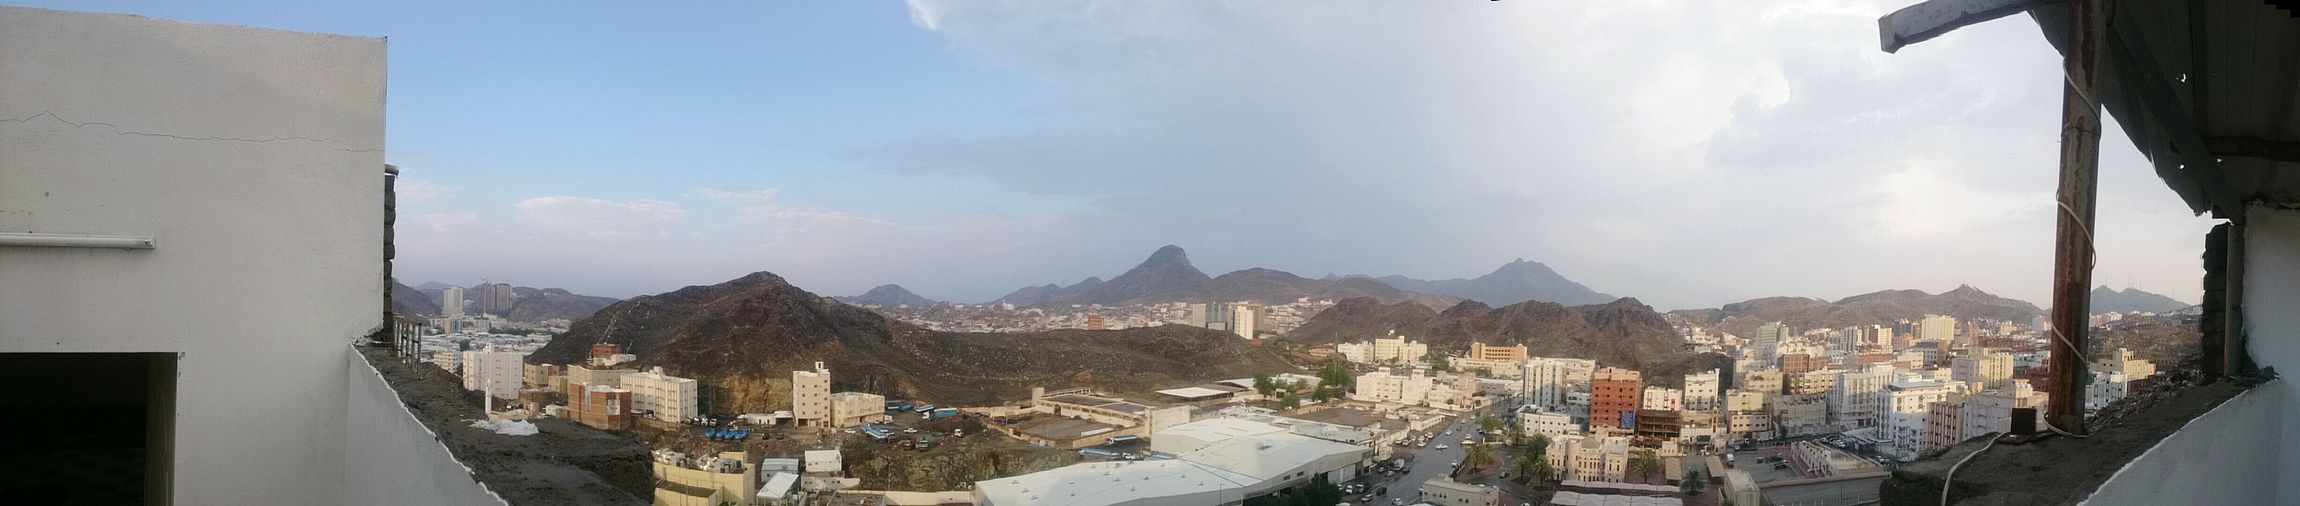 Makkah after Raining Storm ☝😋,... Mountains Walking The Stairs Clouds And Sky Cloudporn Cloudsscape Sky Sky And Clouds Evening Sky Blue Sky Rainy Days☔ Rainy Day After Rain View City Scape City Life City Scene City Scapes From Above  From My Point Of View Panorama Panorama View Panoramaview Panoramashot